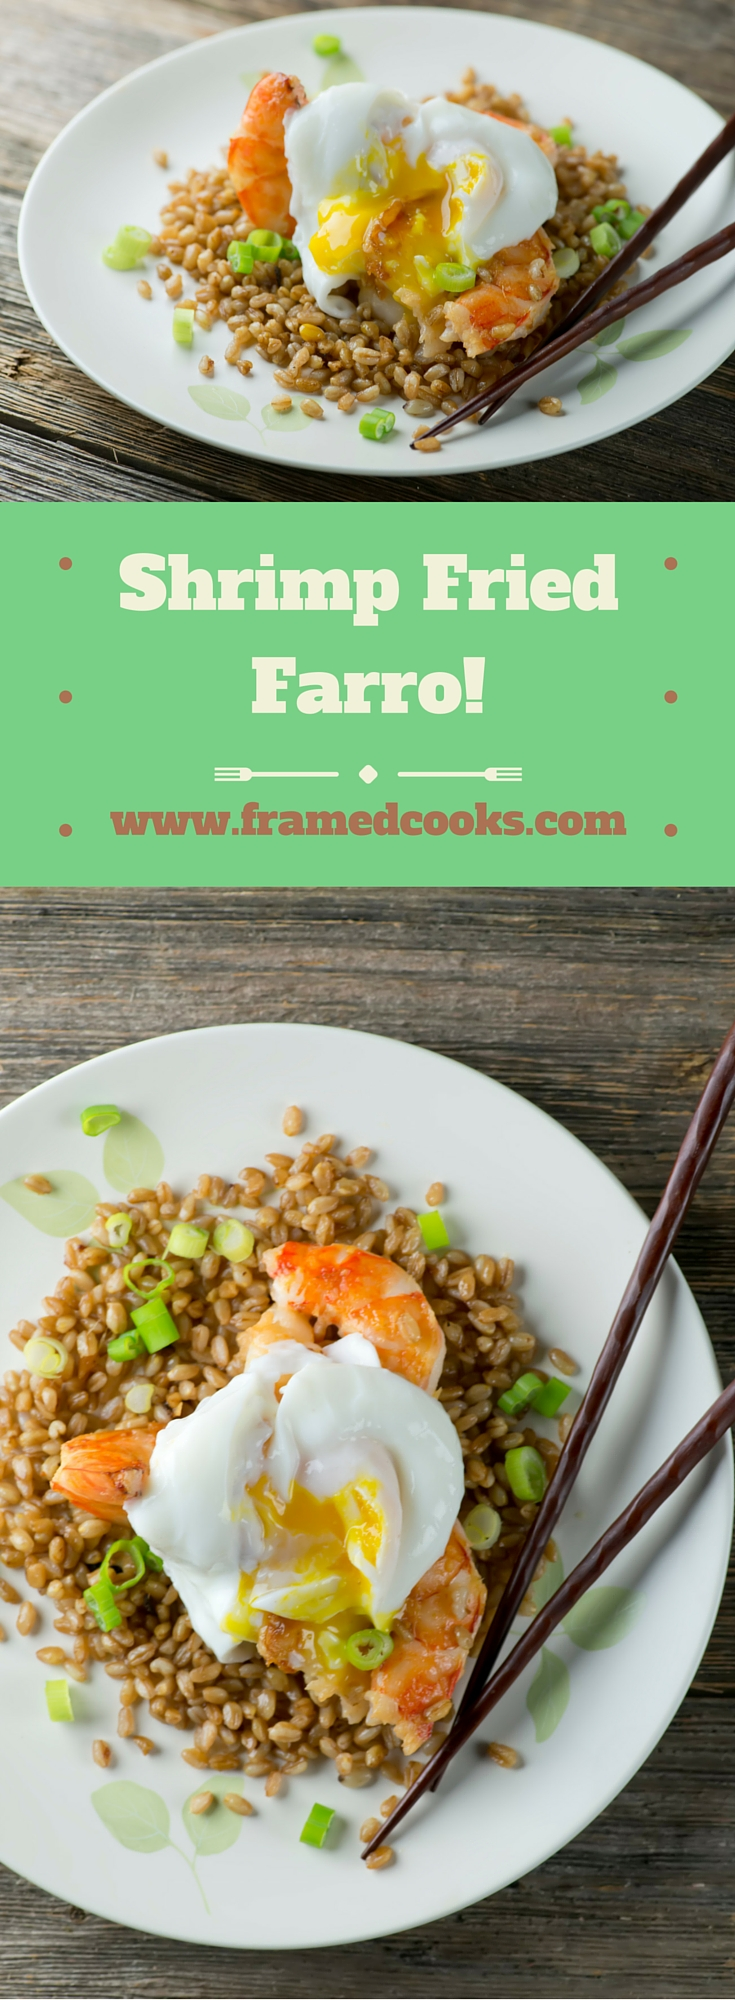 Move over rice!  This recipe for shrimp fried farro is a delicious new spin on an old stir-fry favorite!